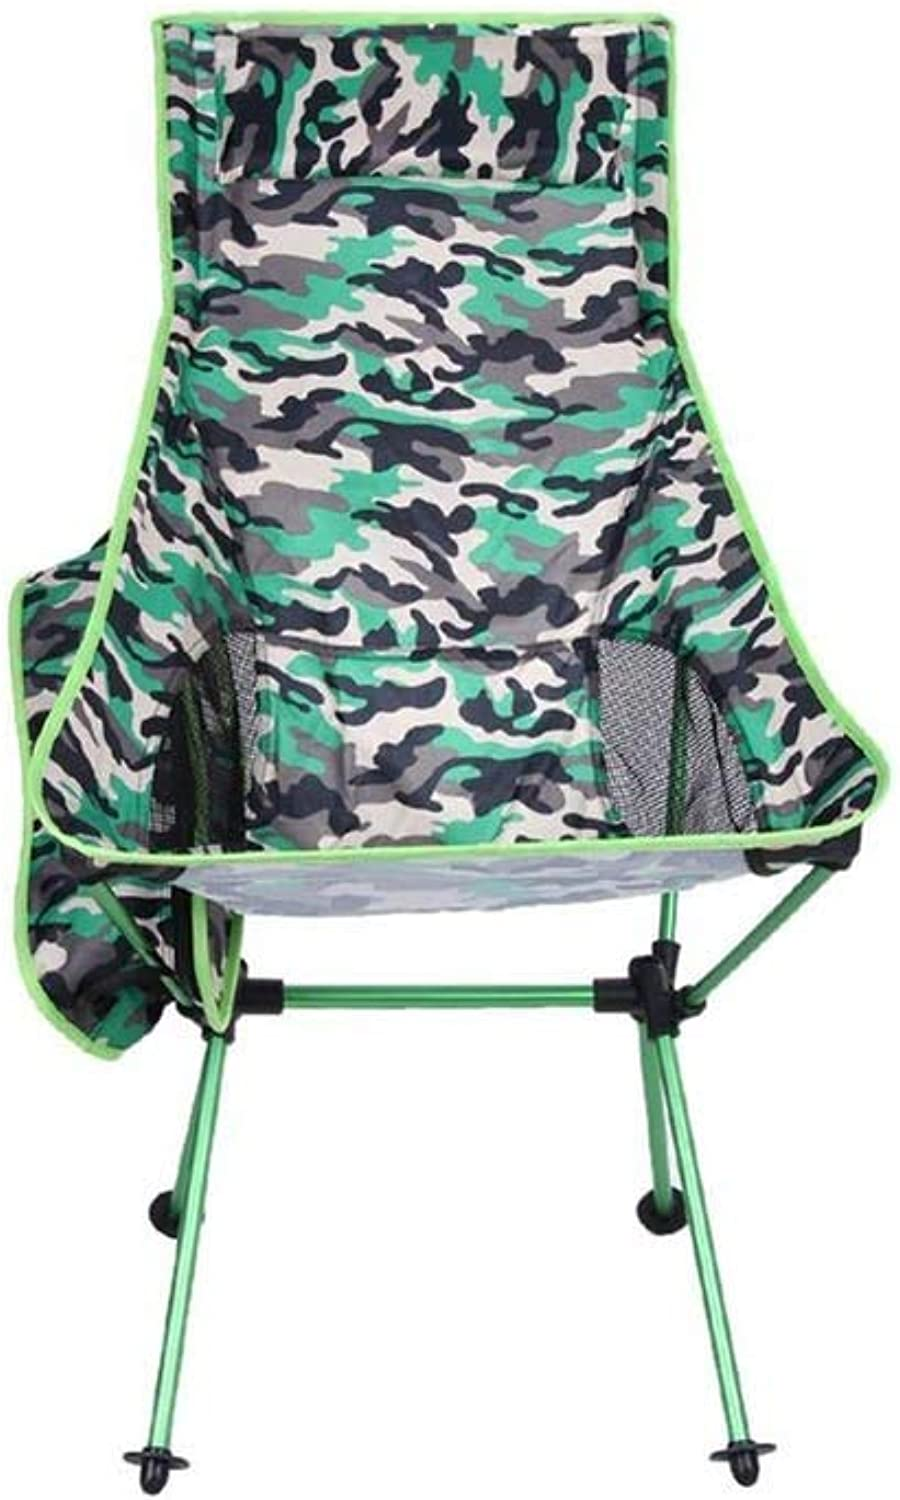 Outdoor Chairs2Pcs 1Pcs Portable Folding Camping Chair Outdoor Fishing Seat UltraLight Foldable Chairs Seat for Fishing Festival Picnic BBQ